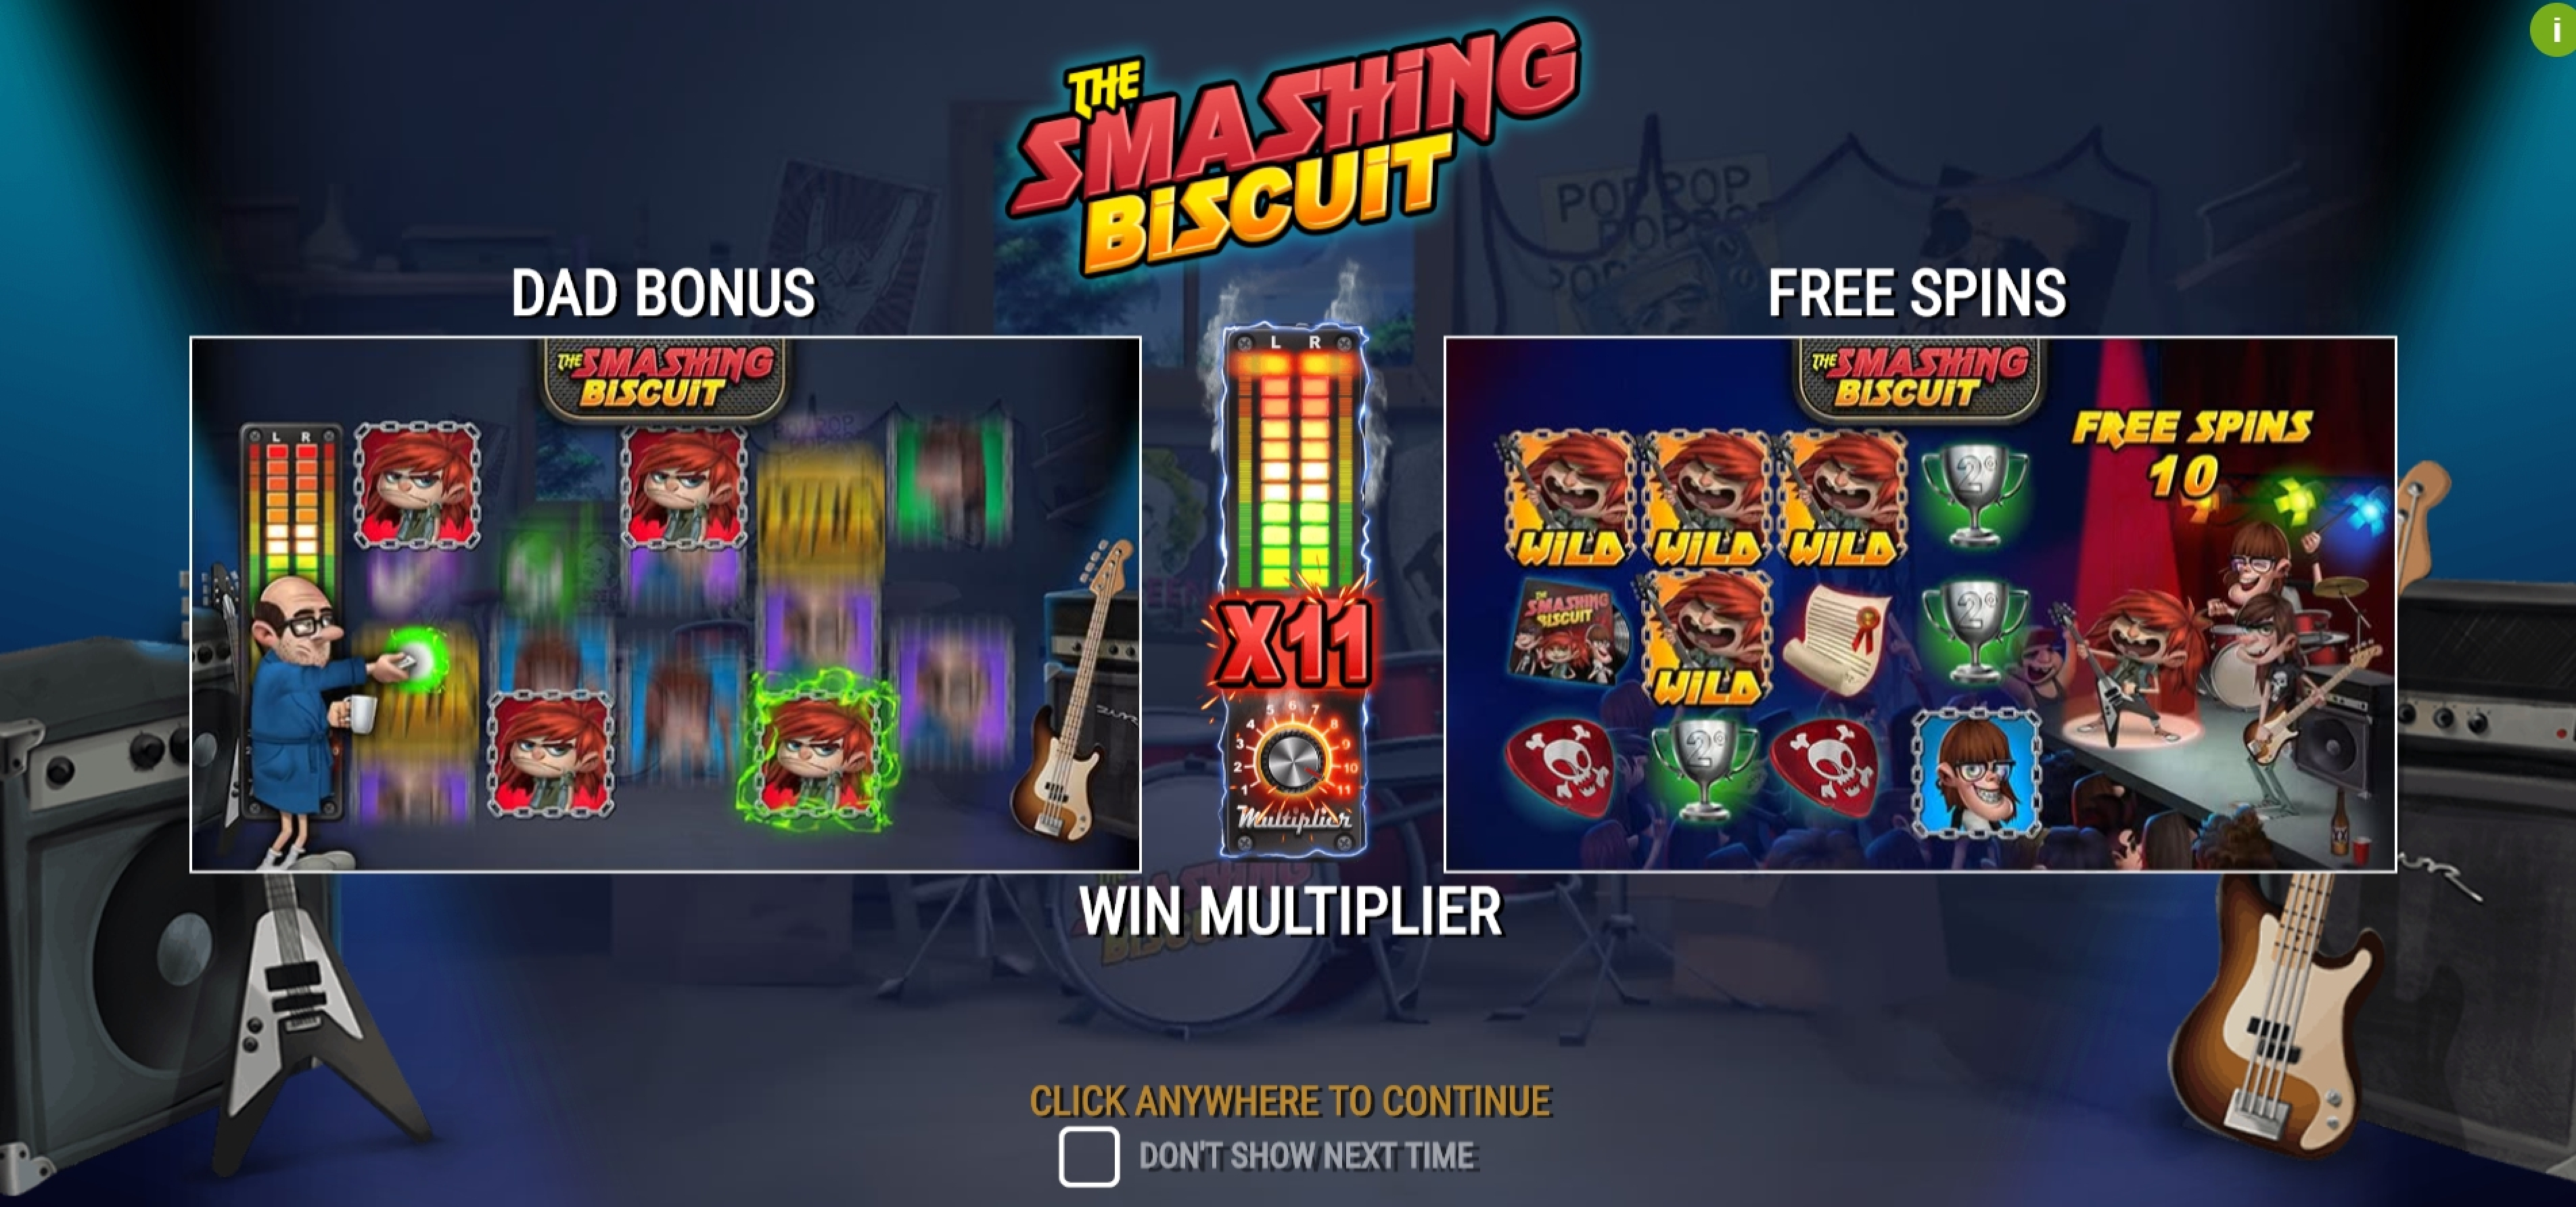 Play The Smashing Biscuit Free Casino Slot Game by PearFiction Studios